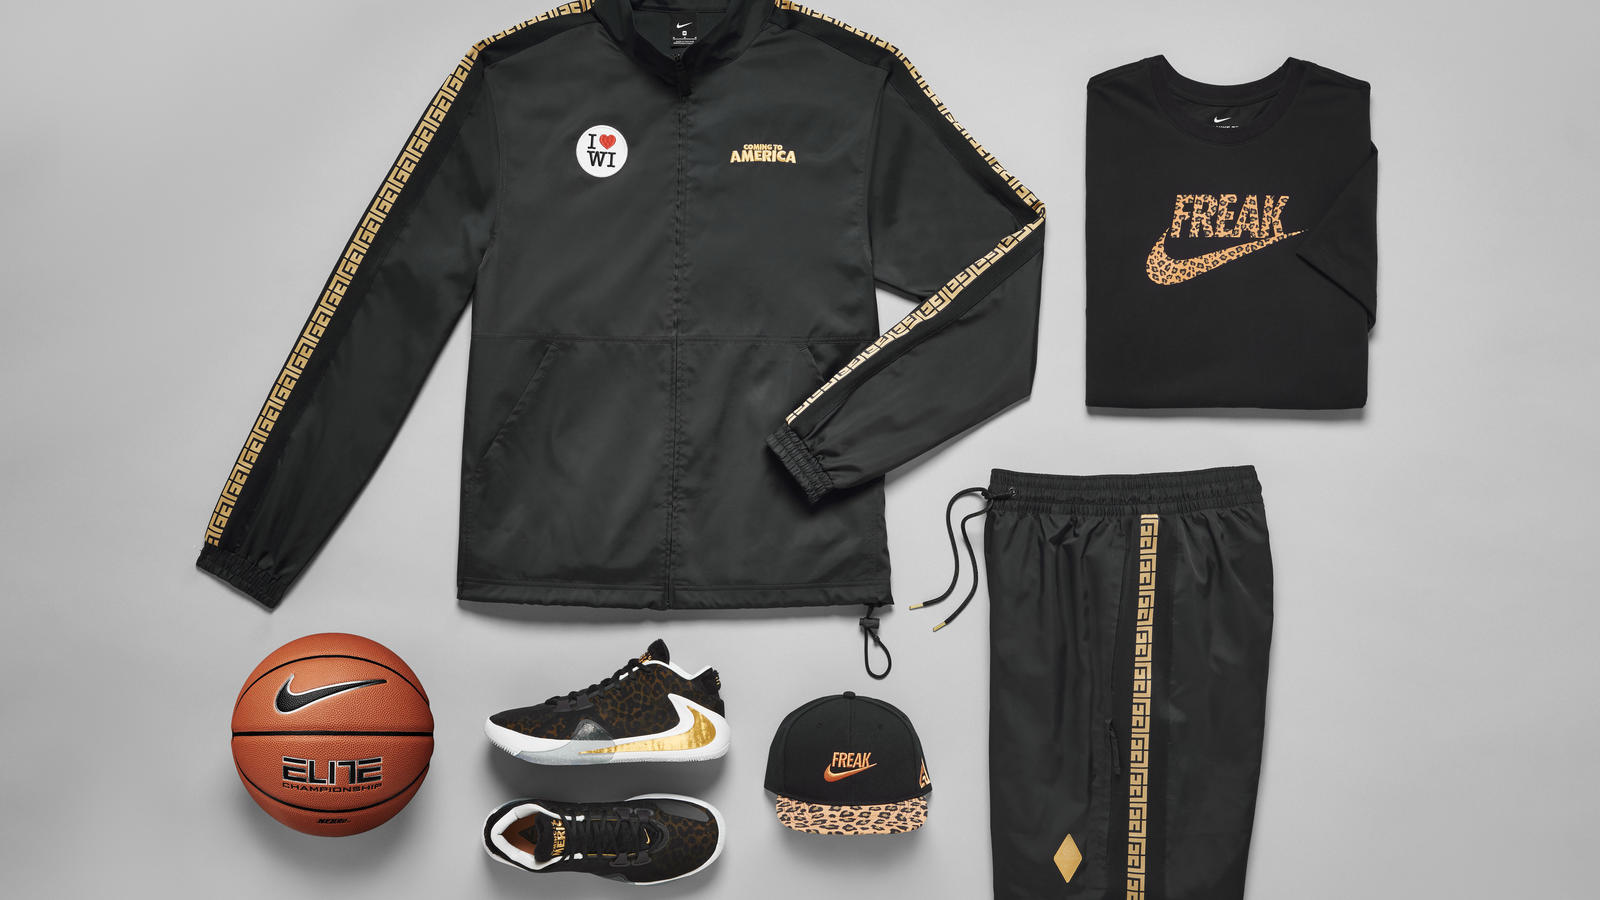 giannis-antetokounmpo-coming-to-america-series-official-images-and-release-date